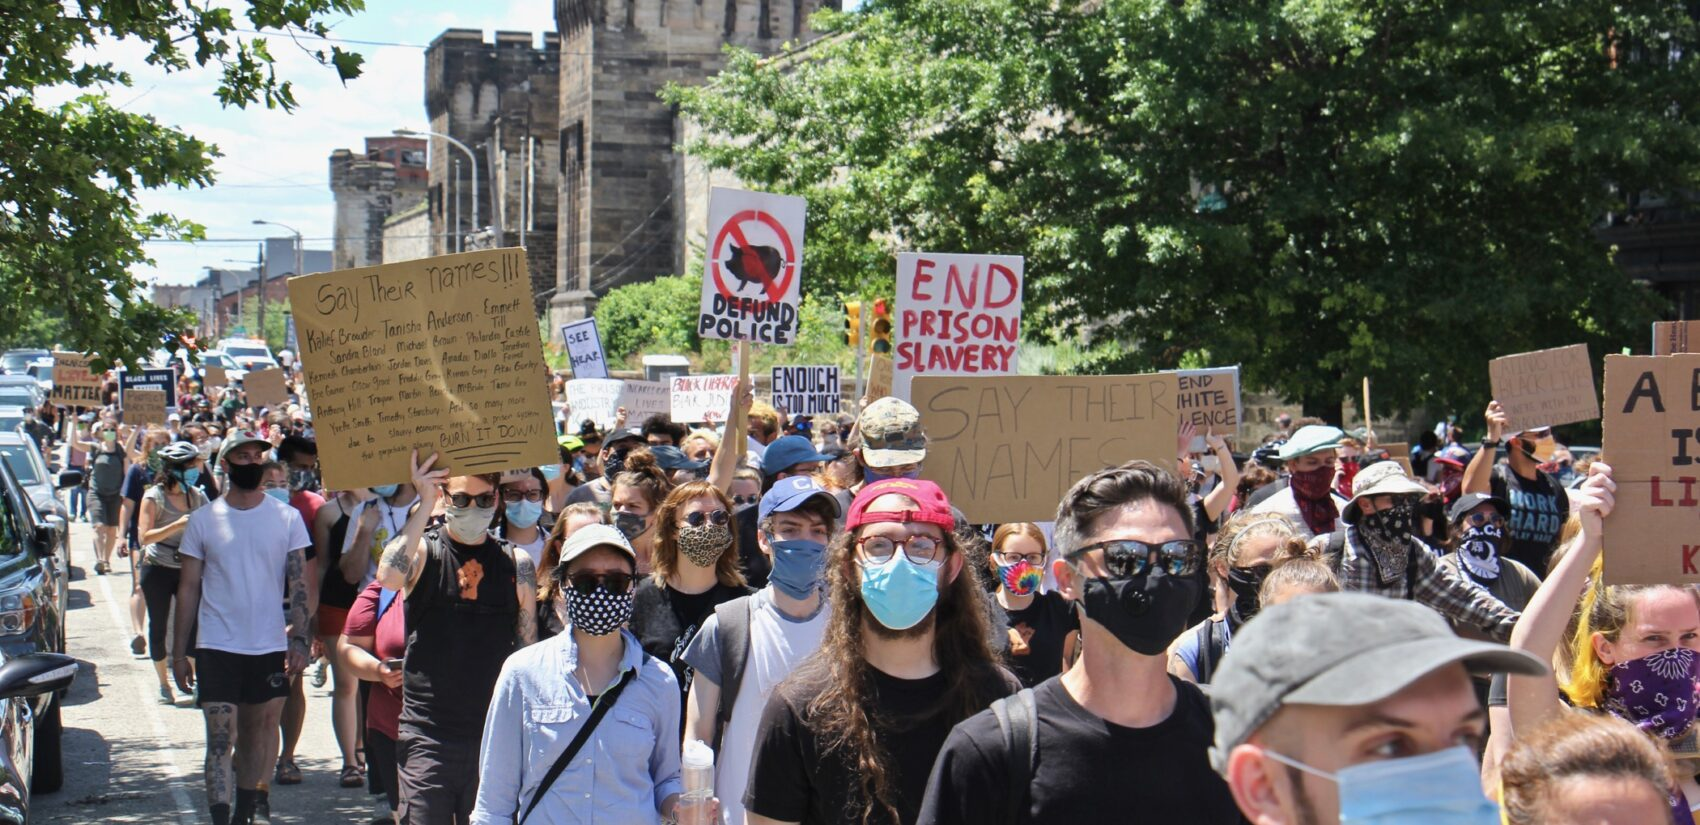 Protesters march from Eastern State Penitentiary